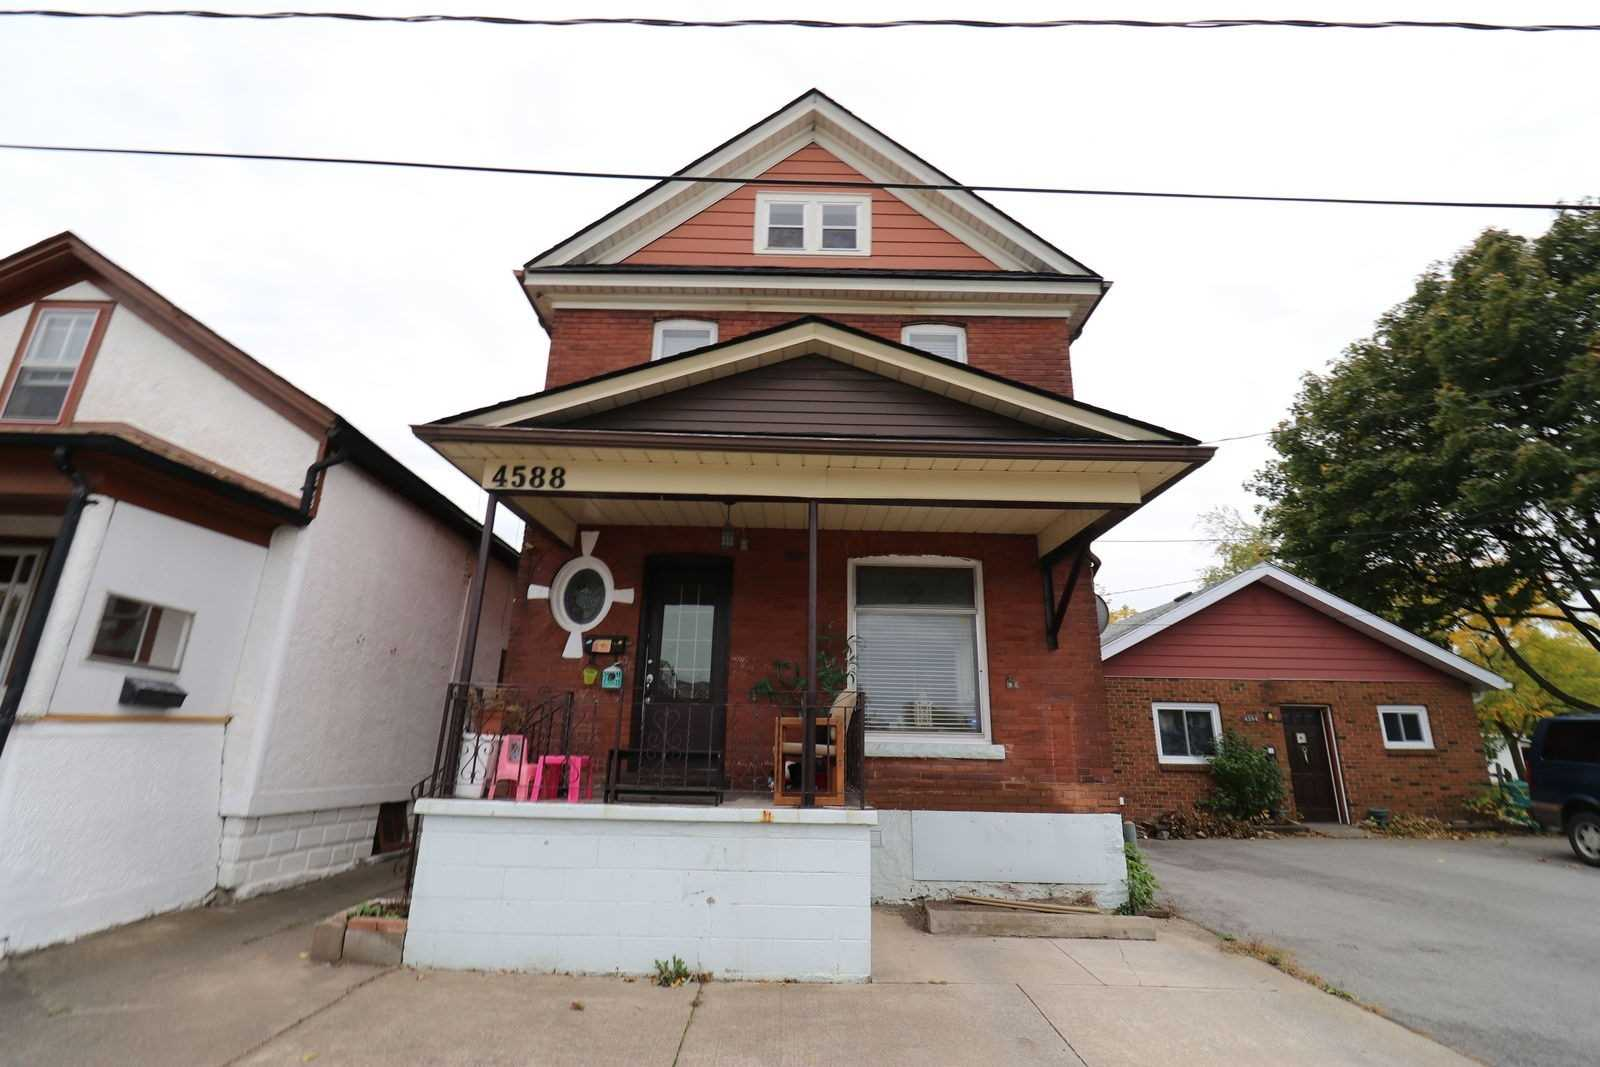 pictures of house for sale MLS: X5062094 located at 4588 Huron St, Niagara Falls L2E3M9